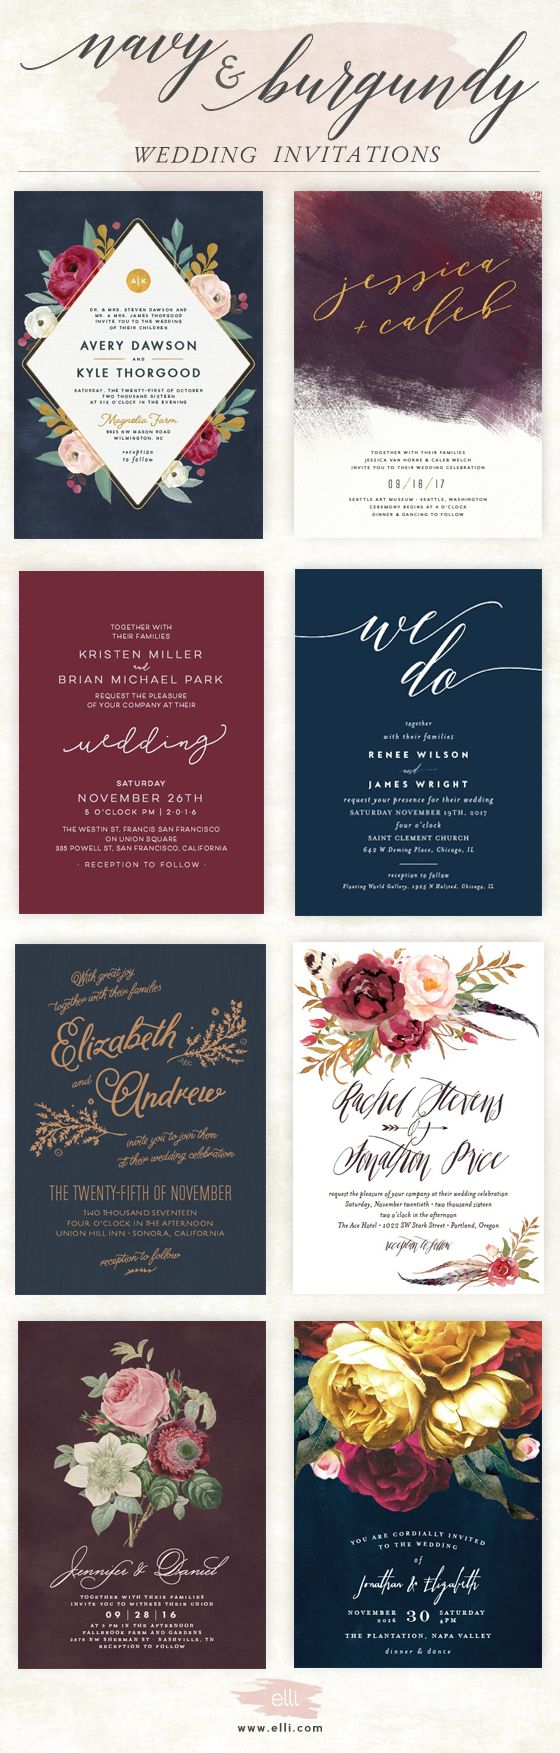 20 Best Wedding Invites Images On Pinterest Invitation Ideas